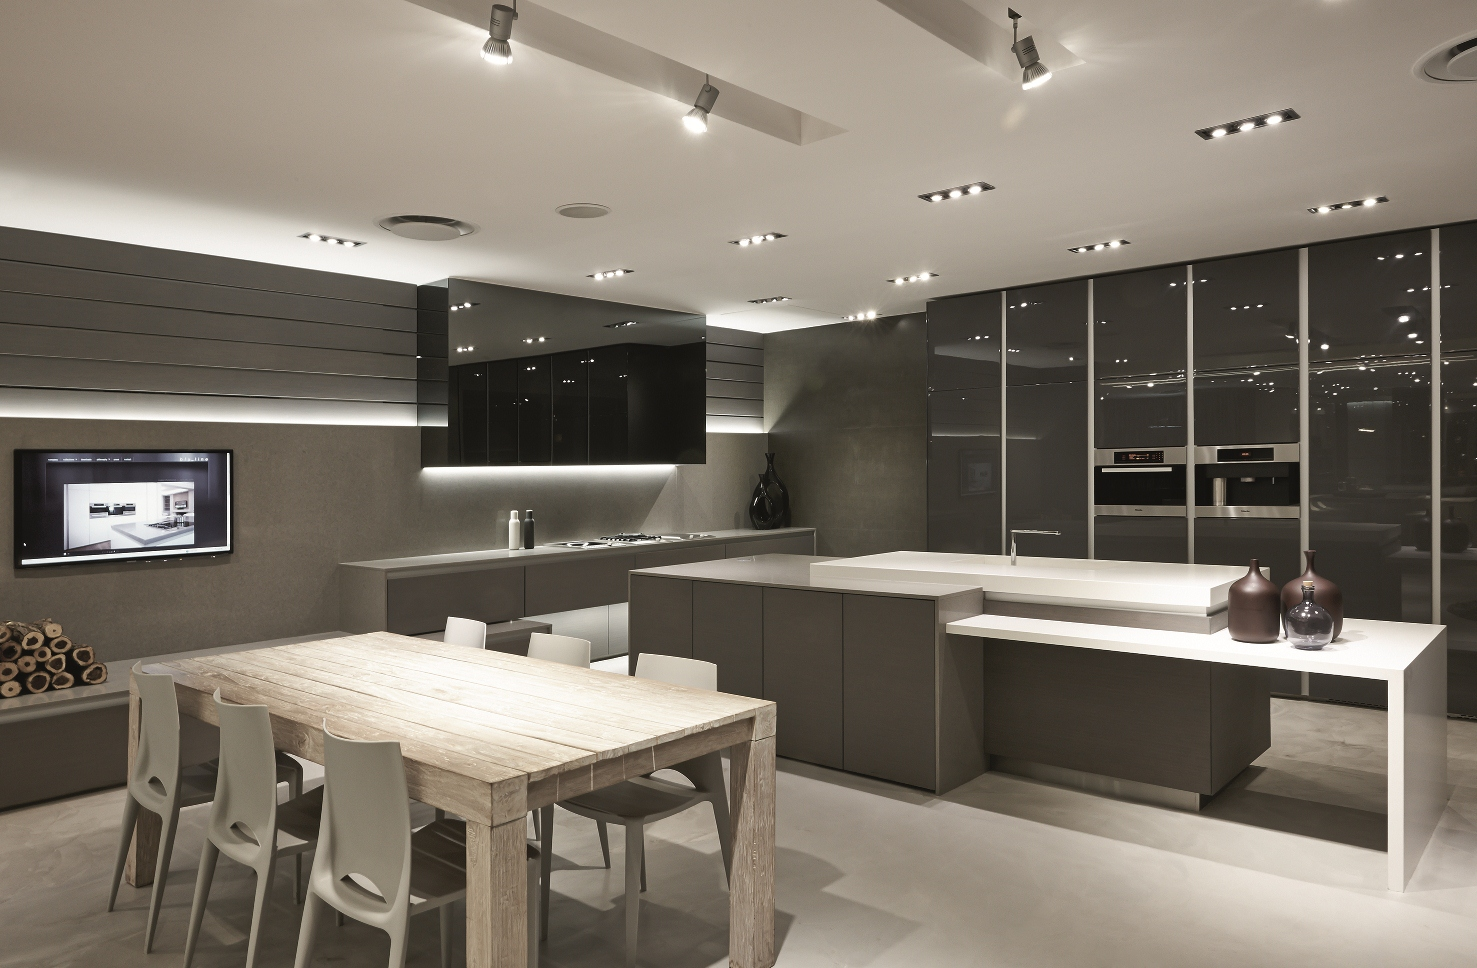 kitchen designs in johannesburg. blu line recently opened their new kitchen showroom in Design Quarter  Johannesburg earlier this year The boasts over 300 square meters of New at